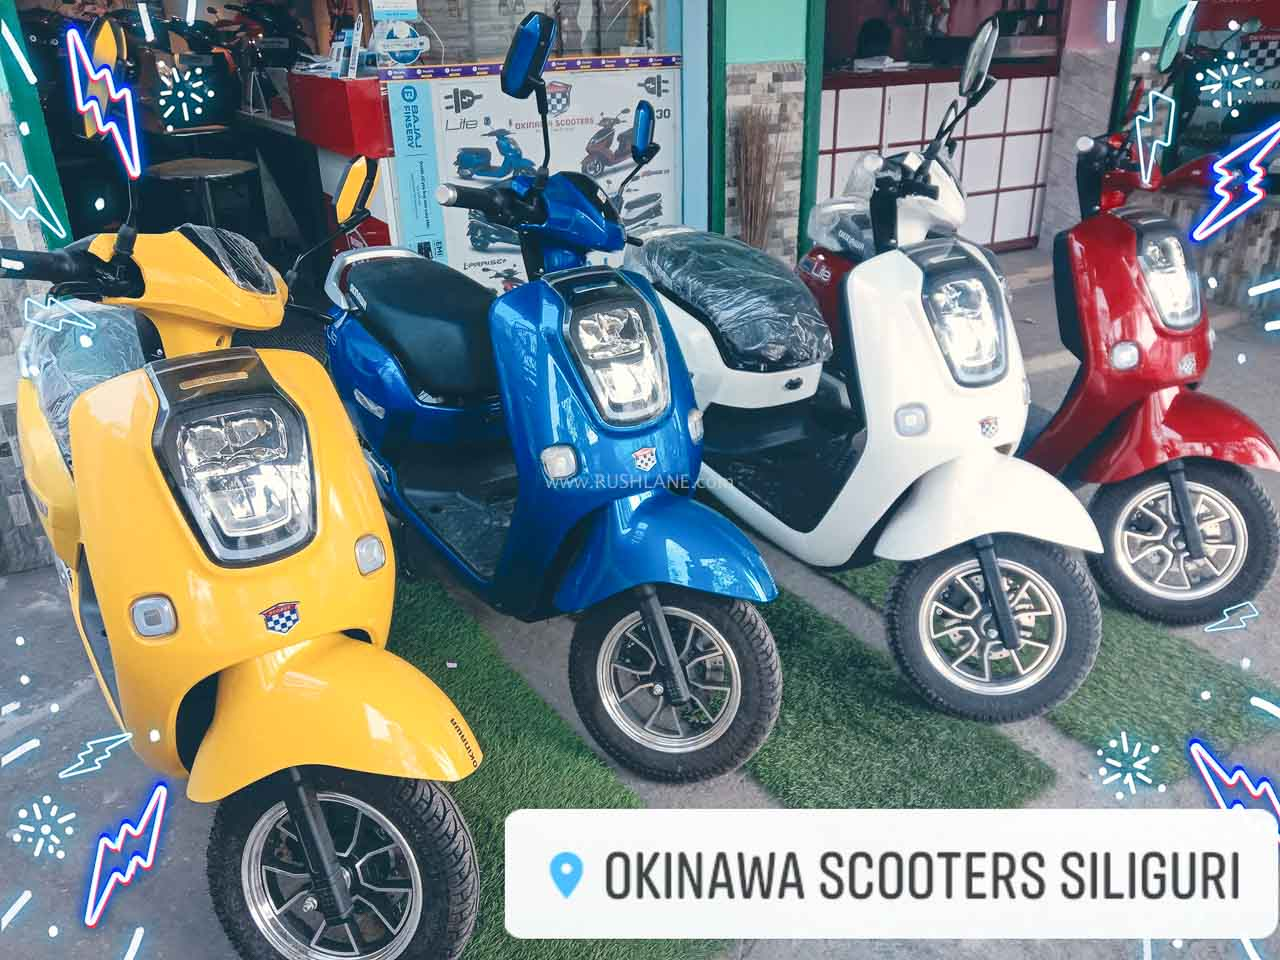 Okinawa beats Ather, Hero Electric scooter in sales – Details